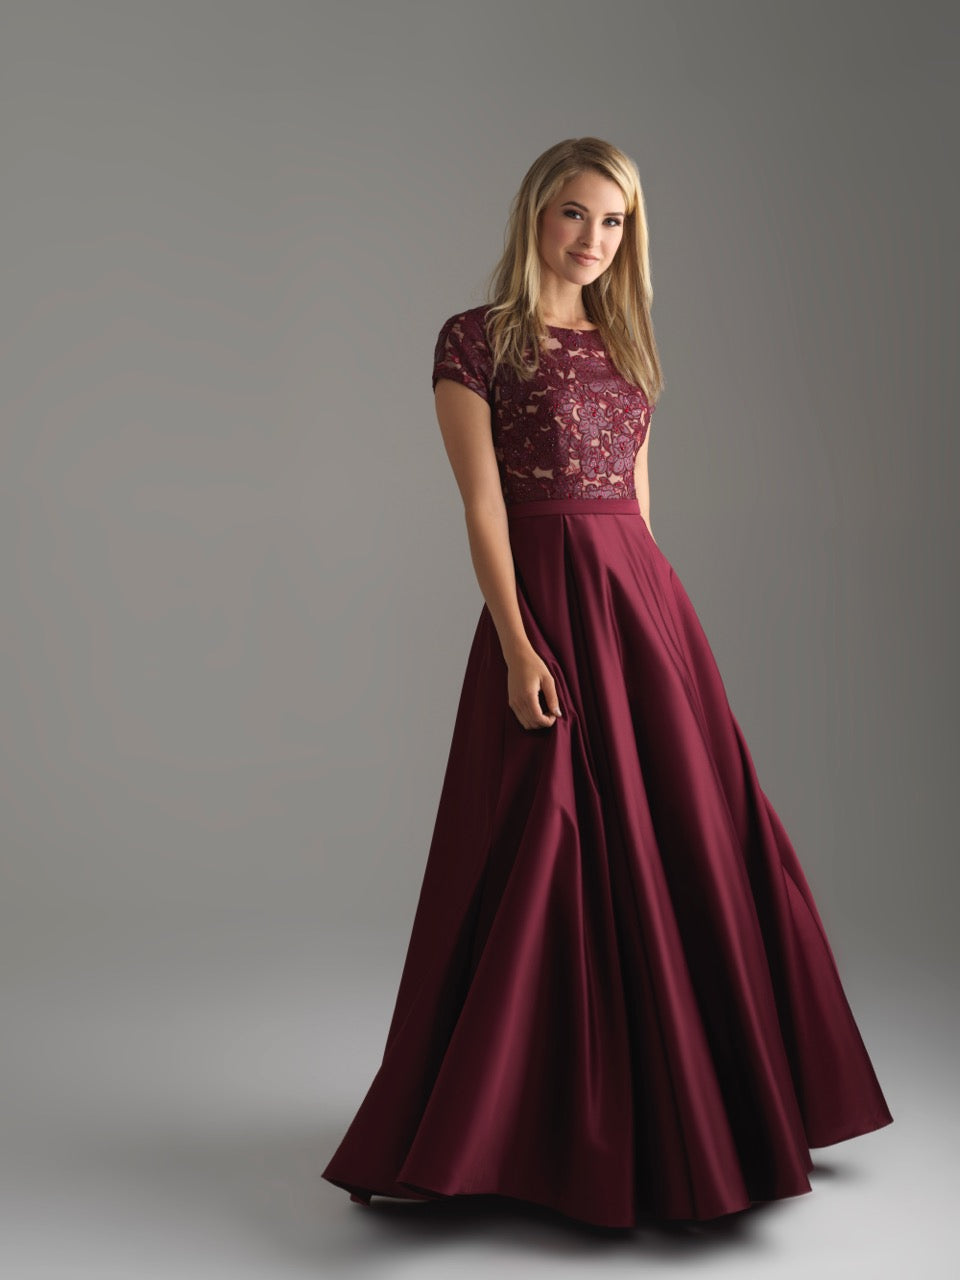 Madison James 18-804M wine modest prom dress A-Line winter formal cap sleeves cheap Mormon Prom conservative